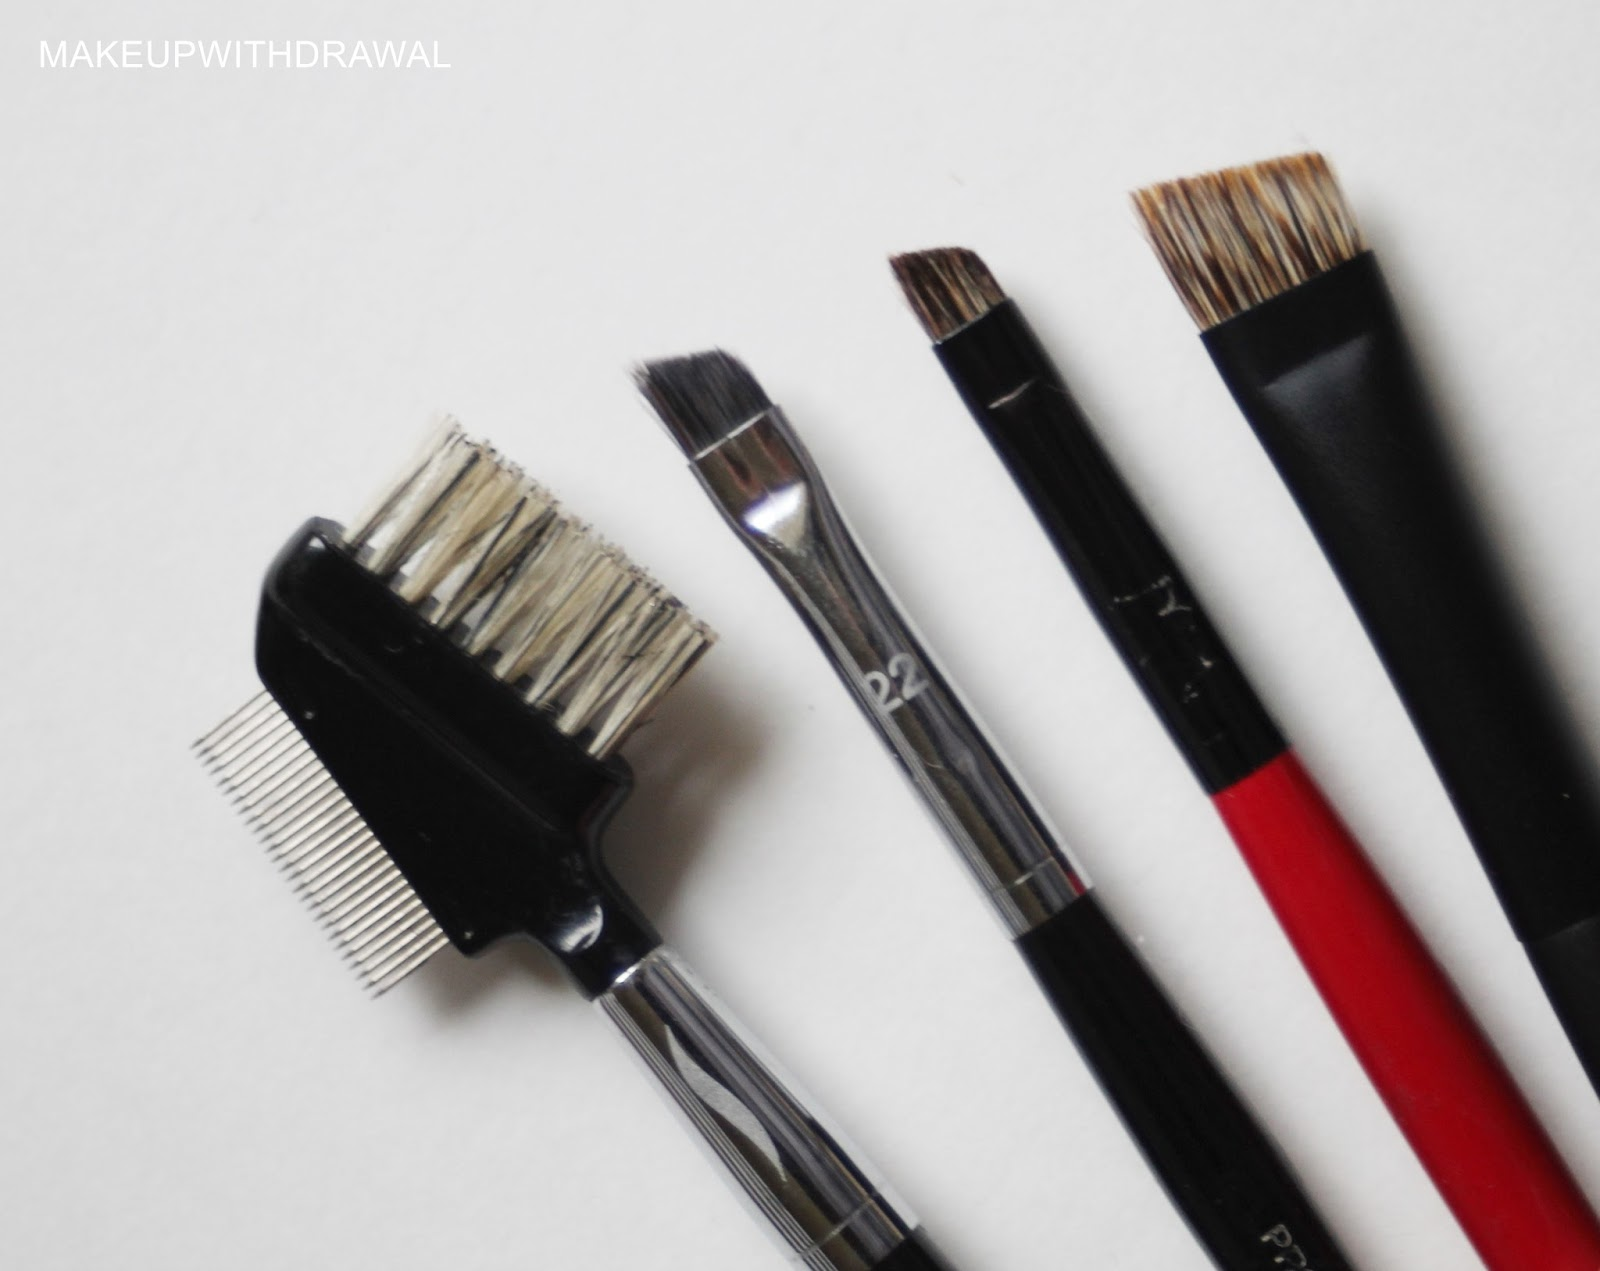 brow brush sephora. from left to right: sephora collection pro #15 brow comb, #22, smashbox angled brush #12, chikuhodo t-9